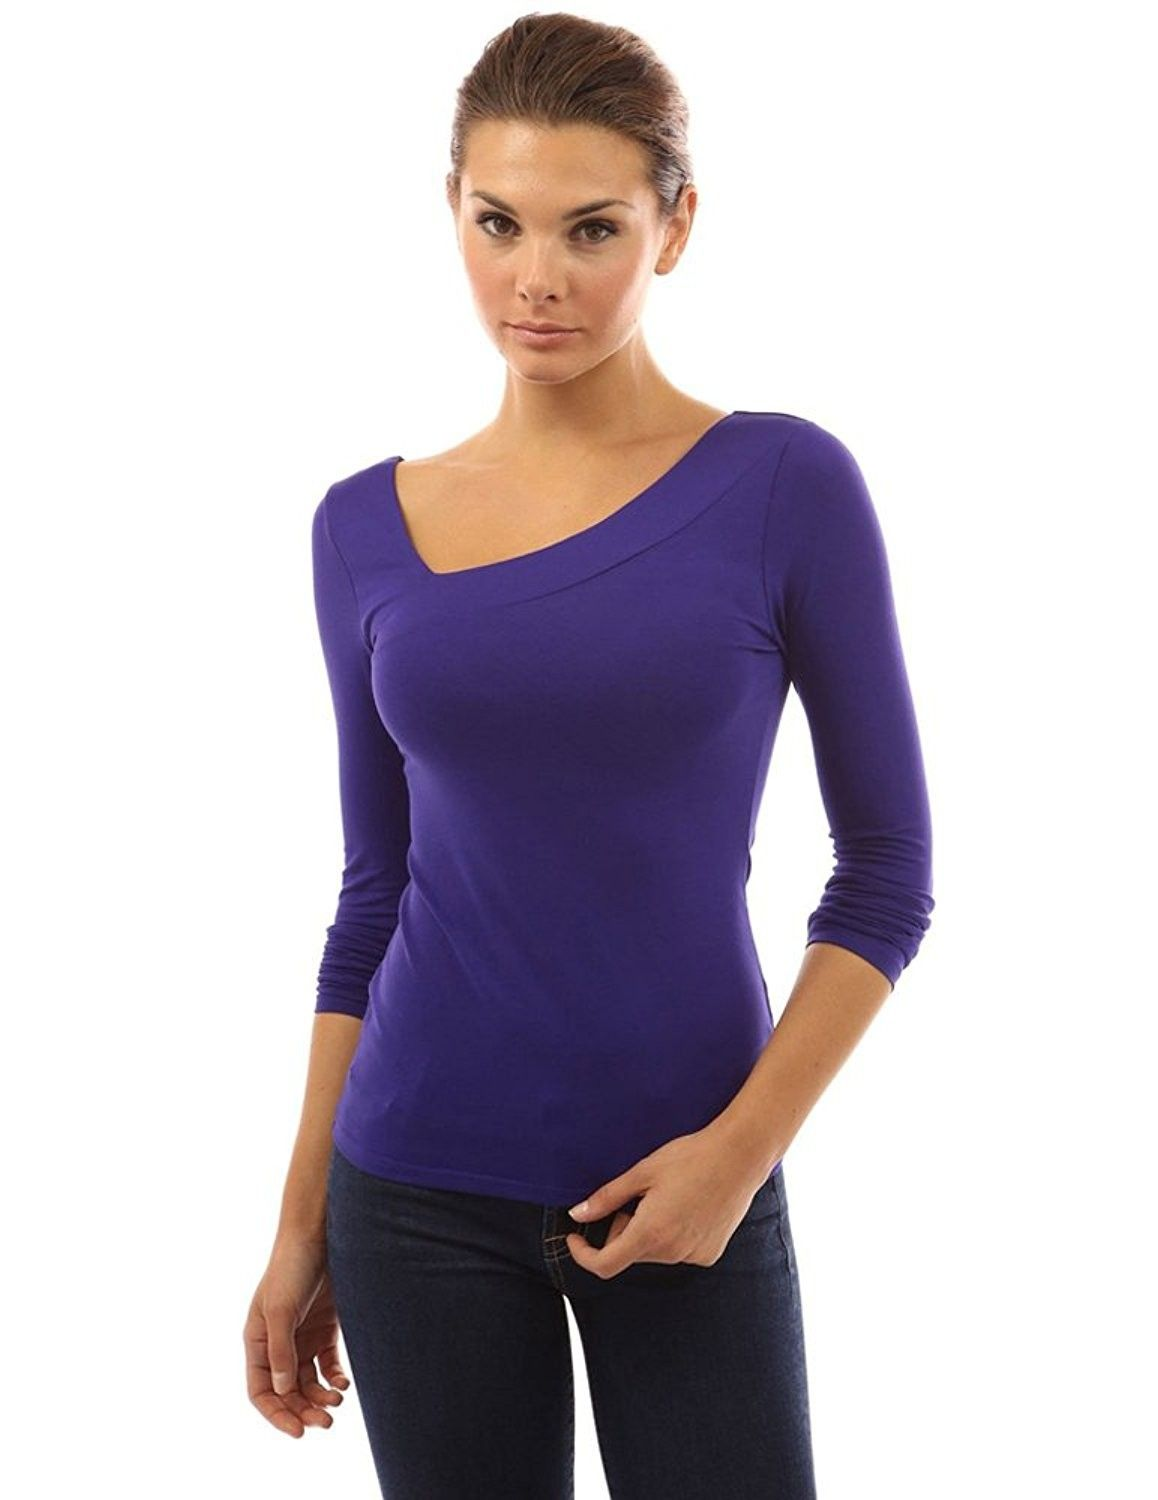 c06ff00a003a72 Women's Sexy Fitted Long Sleeve Casual Tops V Neck Tee Shirts - Blue -  CS17YIK5O74,Women's Clothing, Tops & Tees, Knits & Tees #women #fashion  #clothing ...